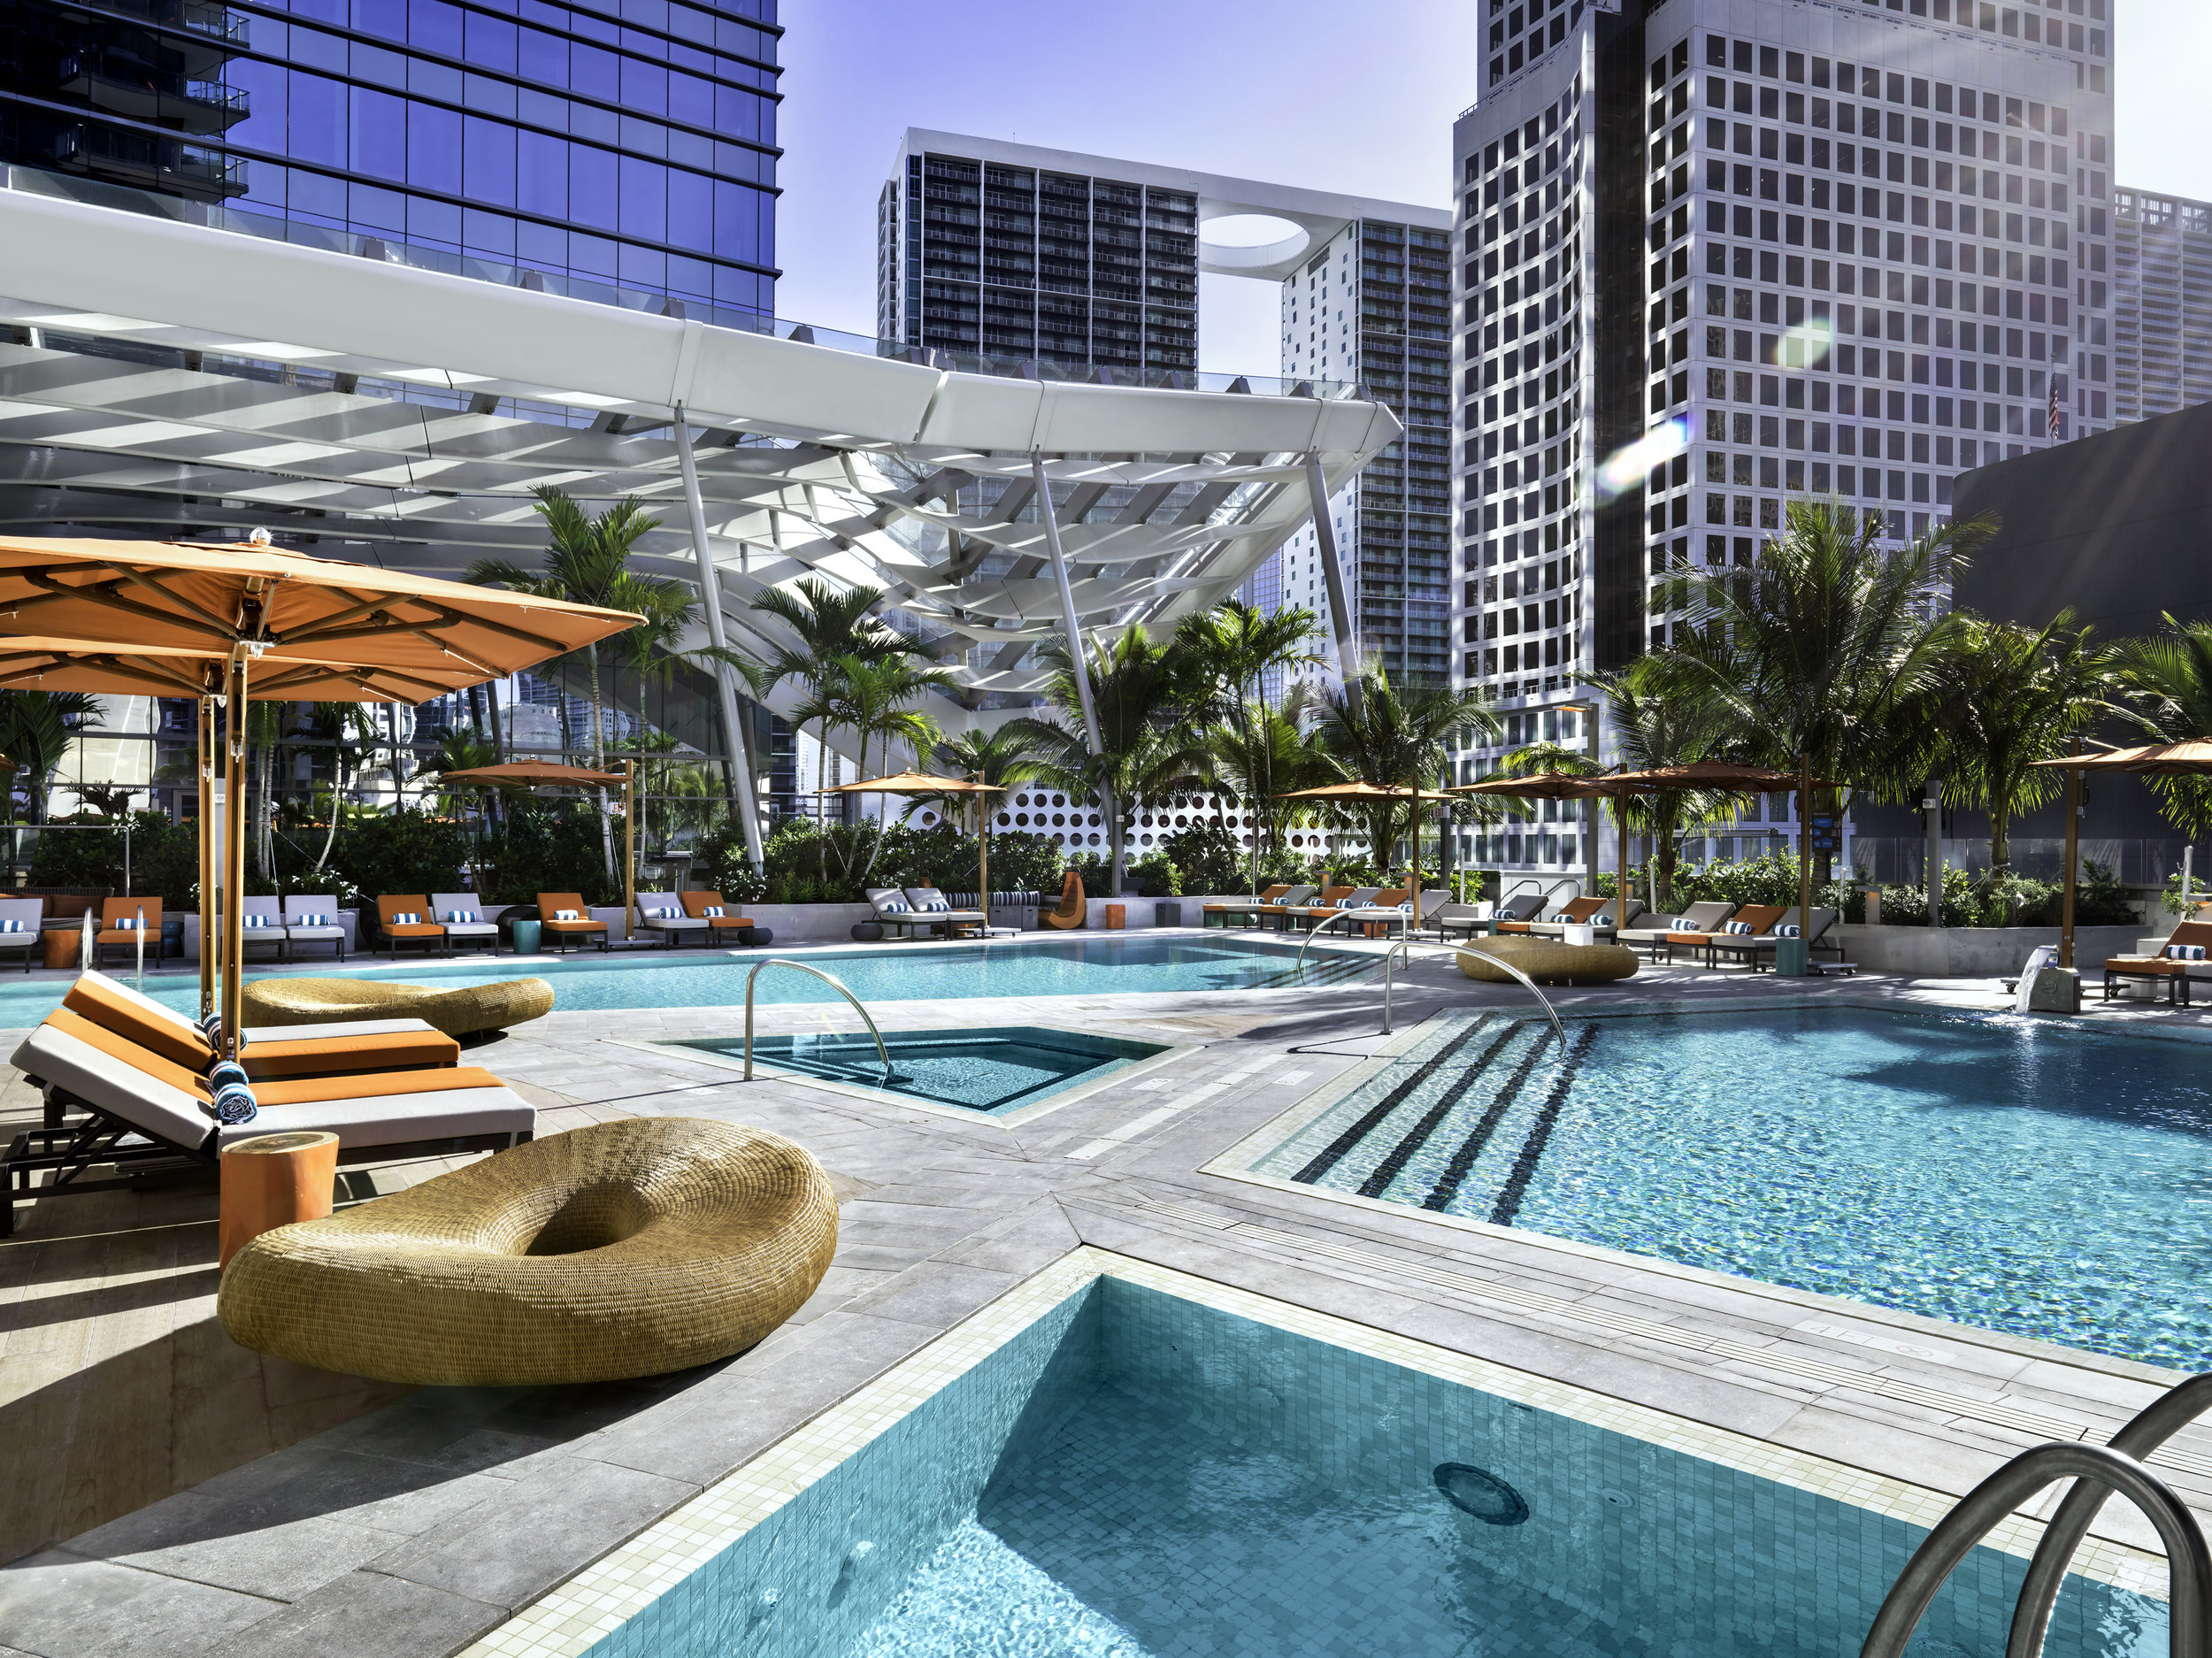 Swimming pool at EAST, Miami. Photo courtesy Swire Hotels.